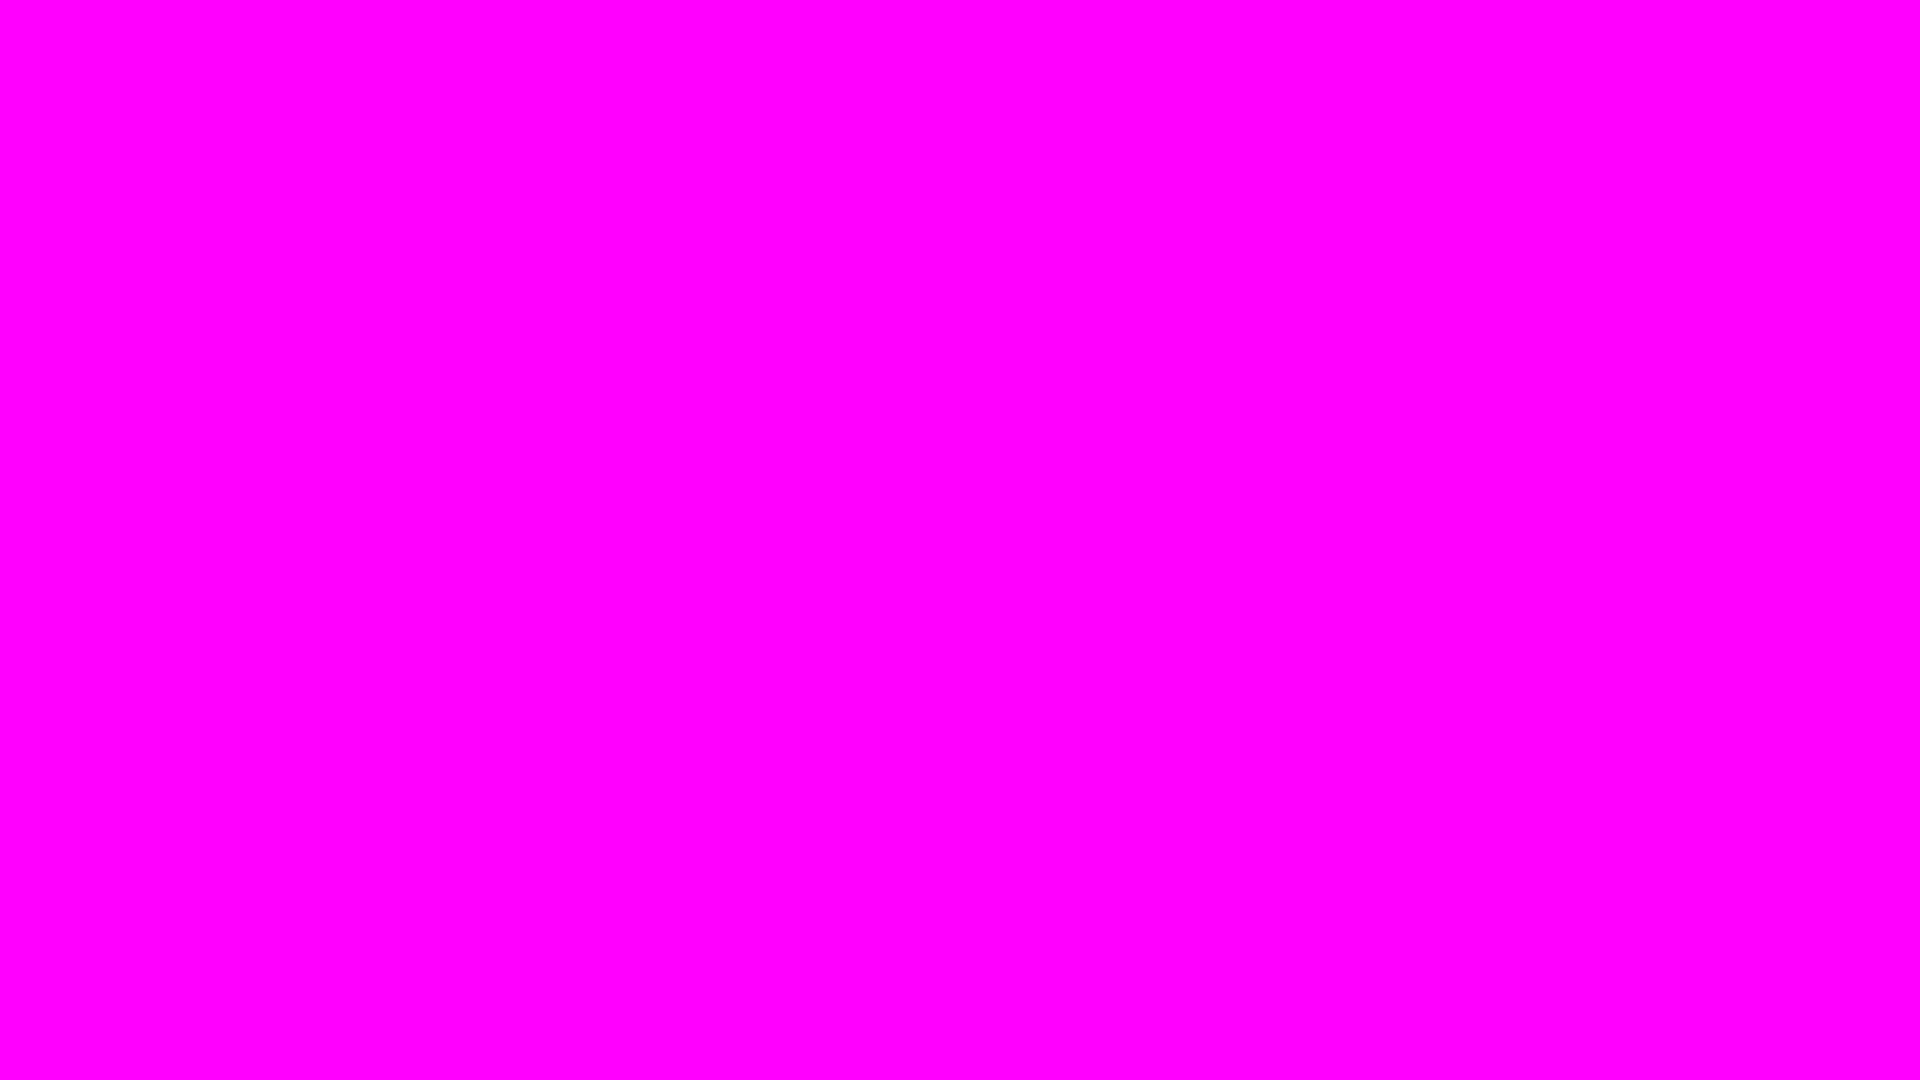 Pink Screen